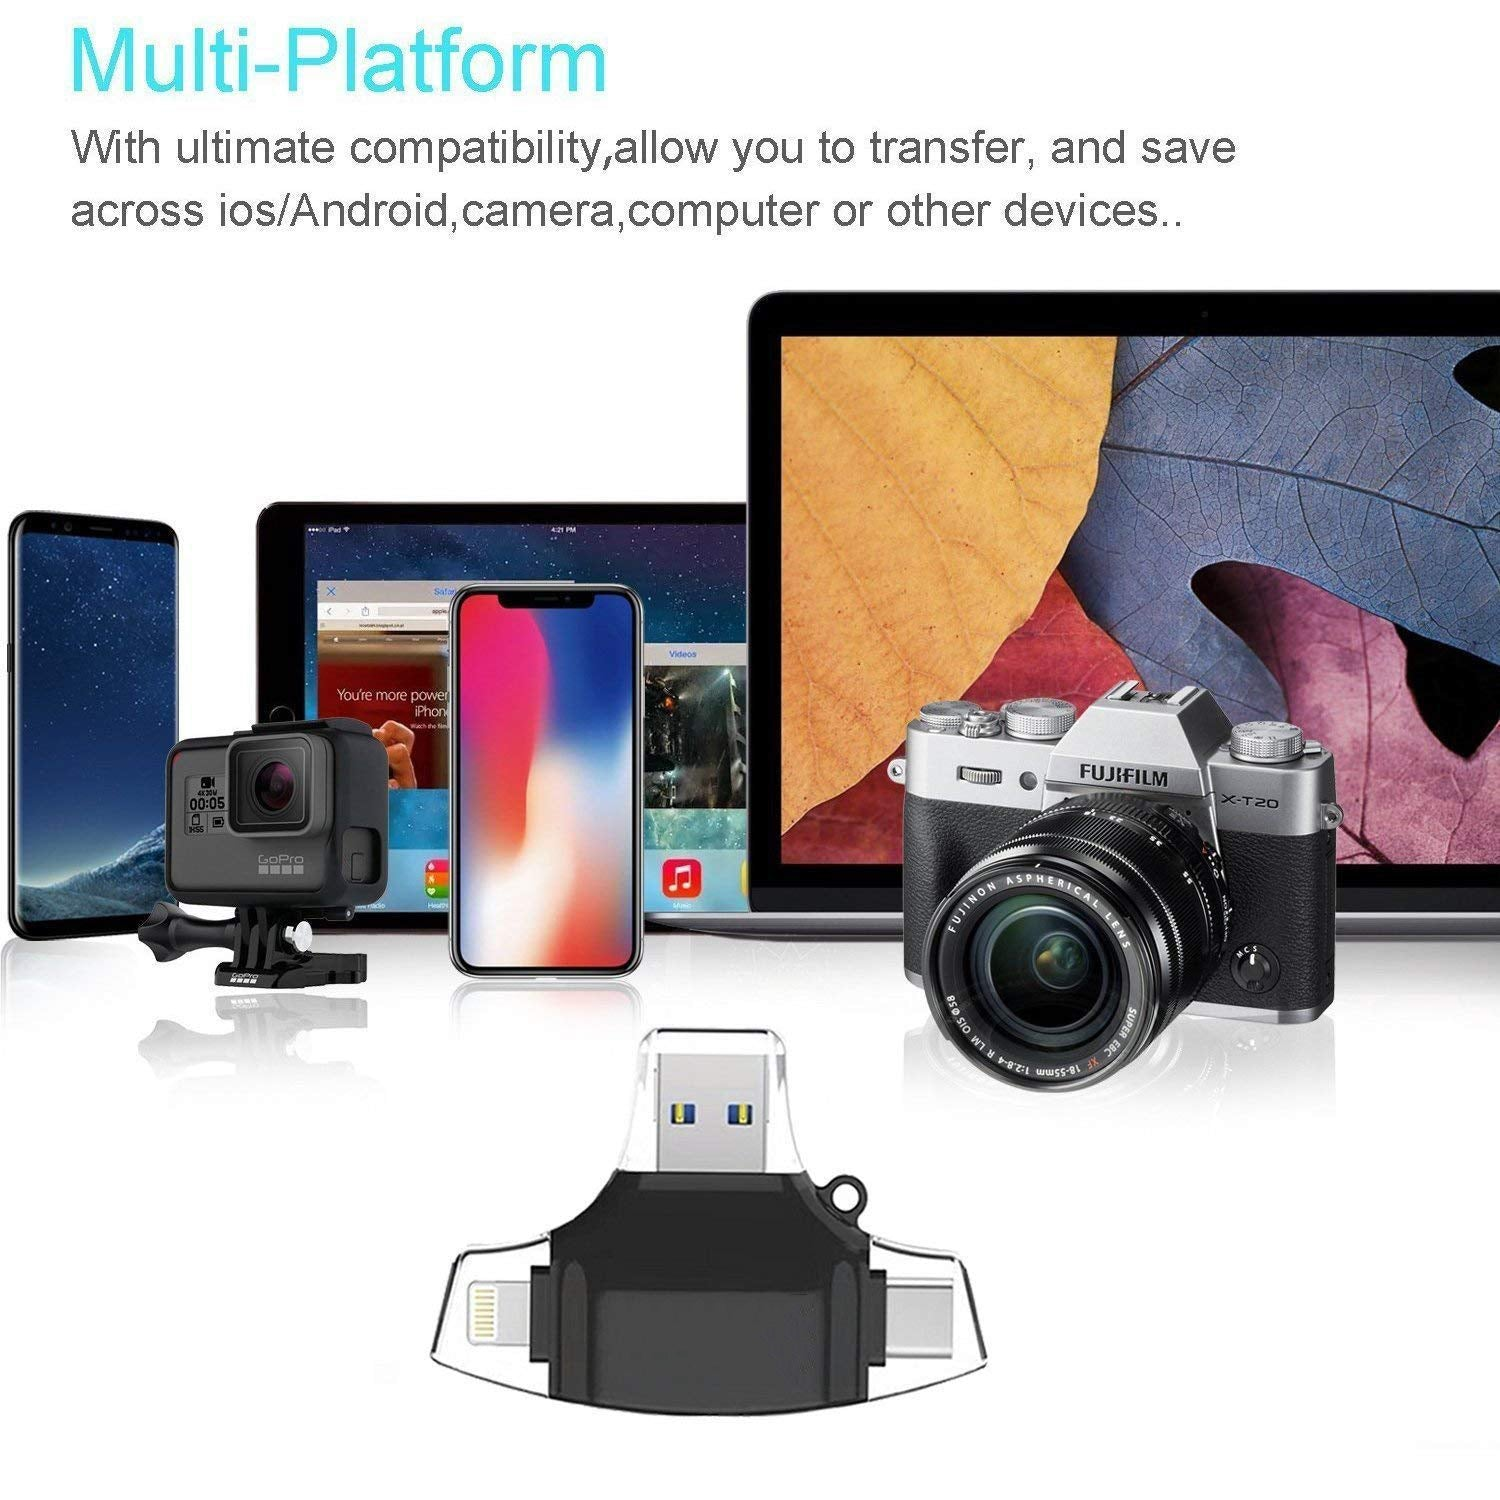 4-in-1 Card Reader for Lightning+Micro USB+USB3.0+Type-C Interface for iPhone iPad Android Mac Smartphones white